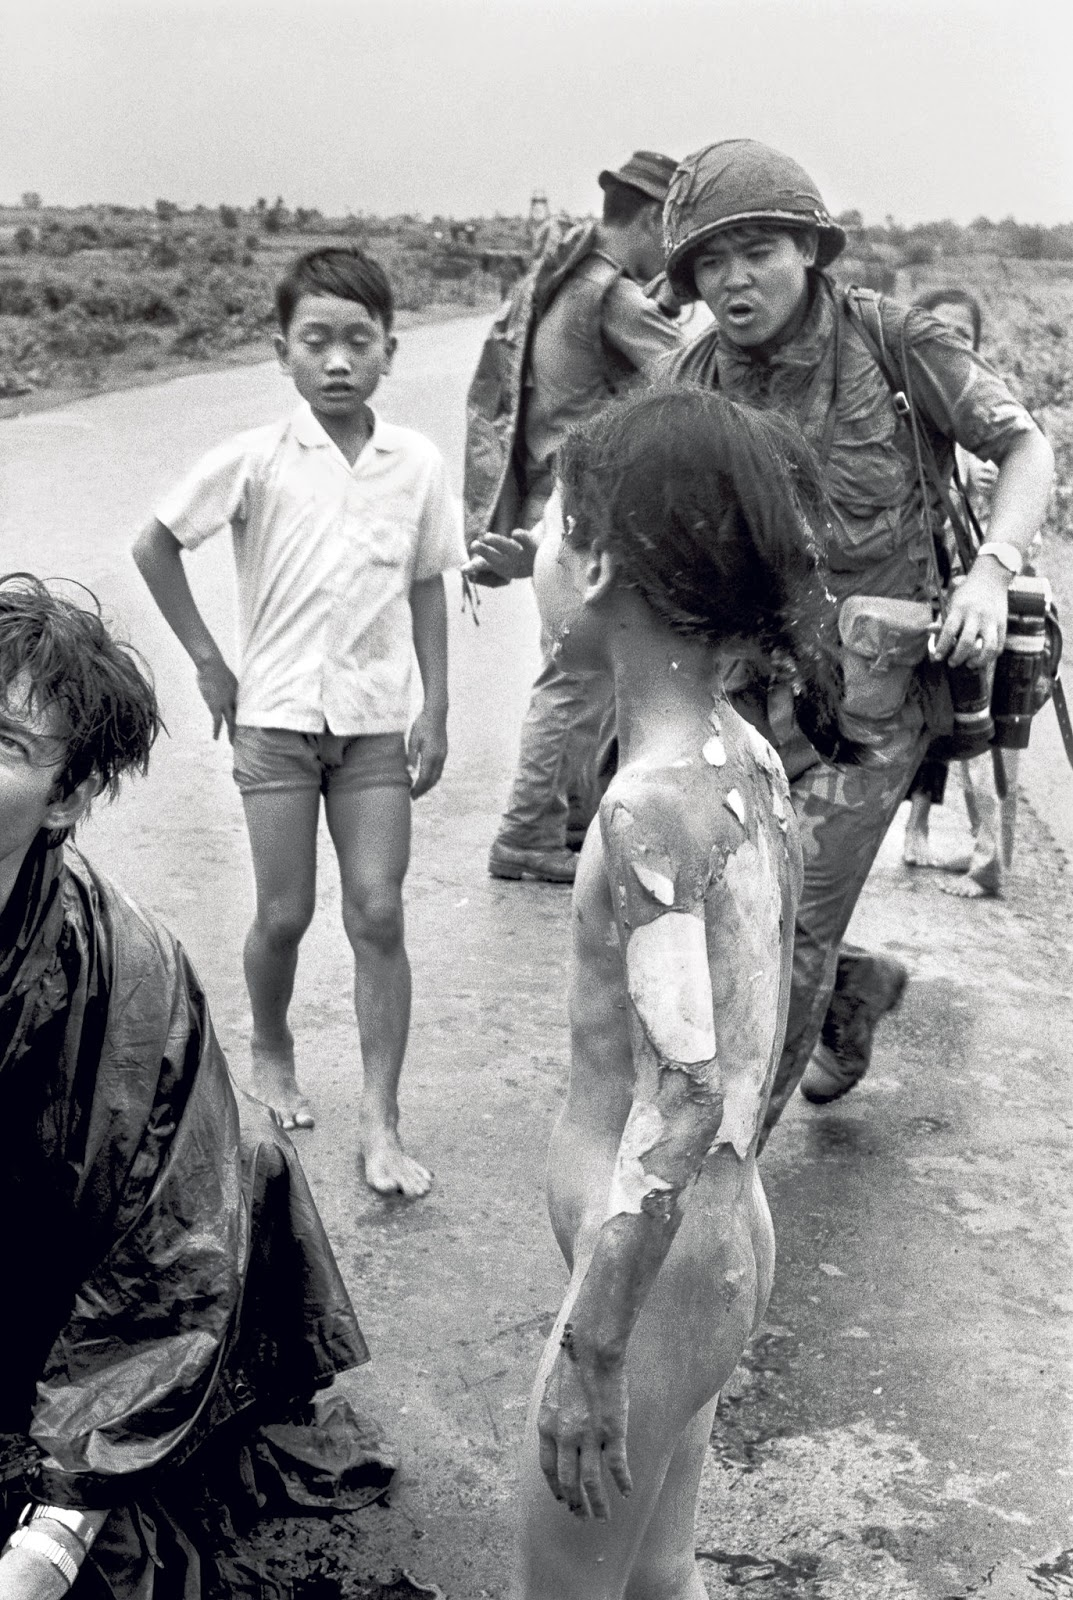 The photo clearly shows the severe burns to the back and arms that Kim Phuc sustained during that conscious napalm bombardment and of which she still bears the scars today.